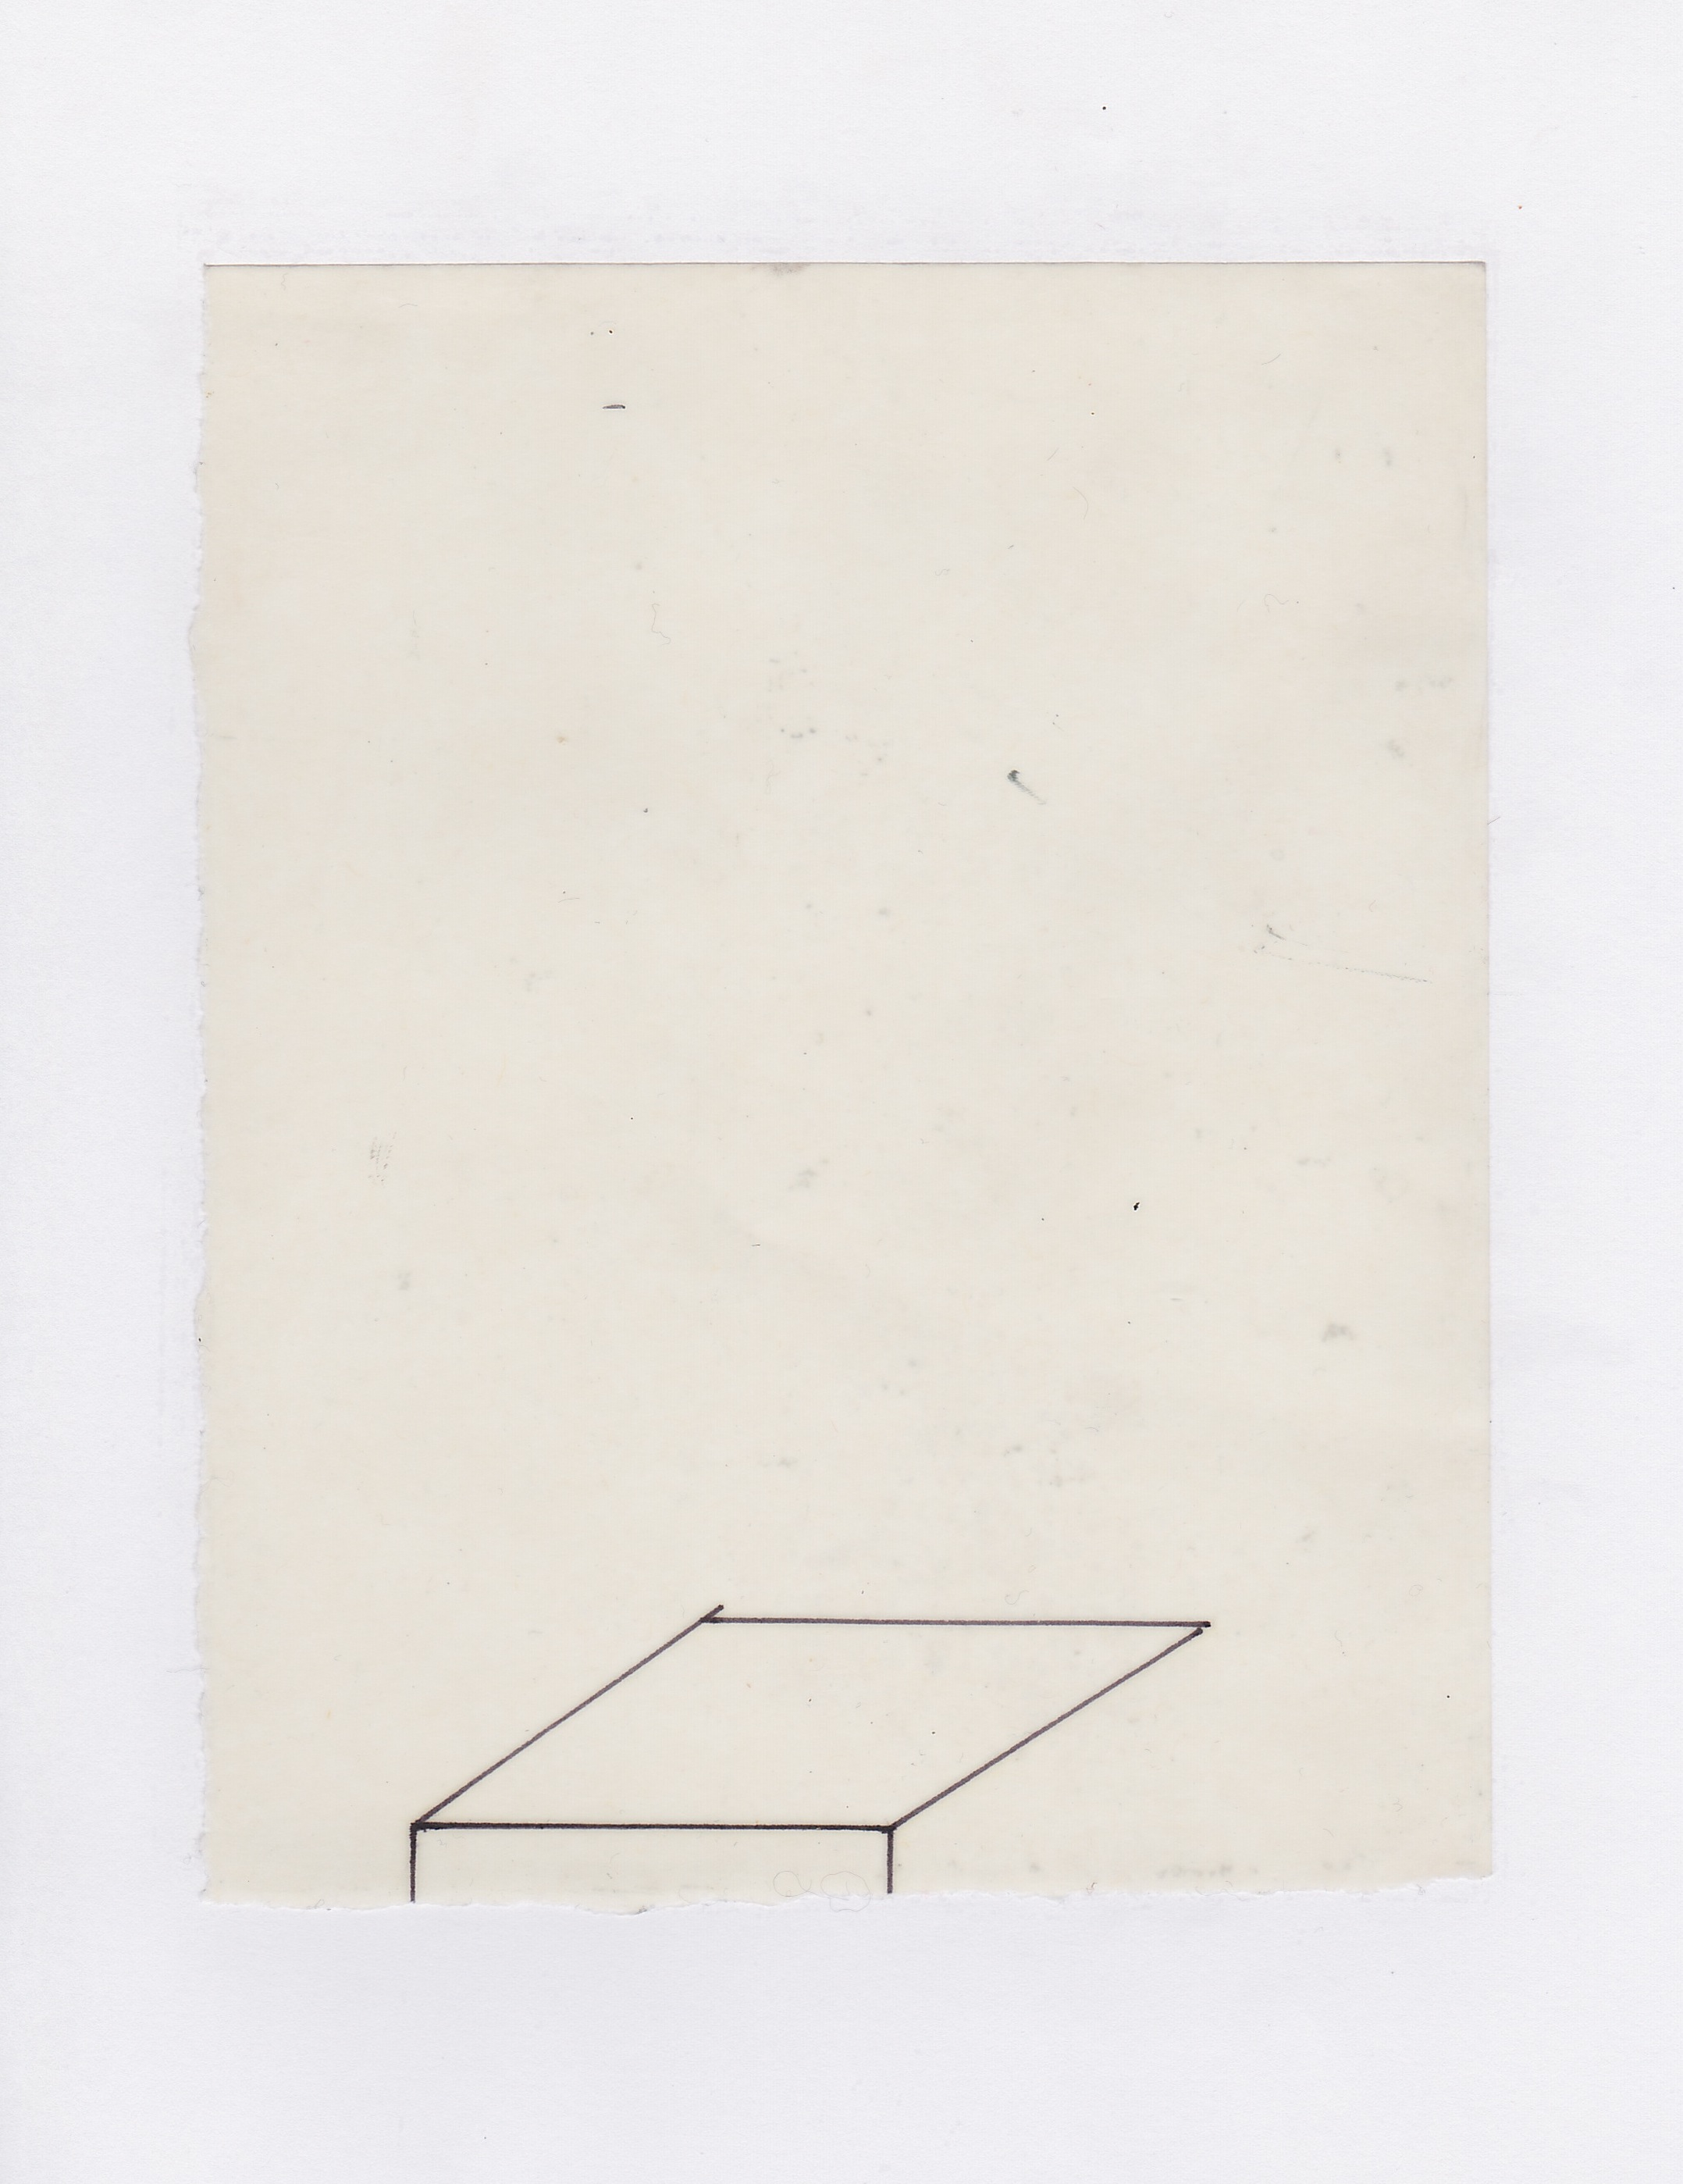 Untitled (the city, observations 04)  Pencil on oiled fabriano paper.  140mm x 180mm  December 2013.